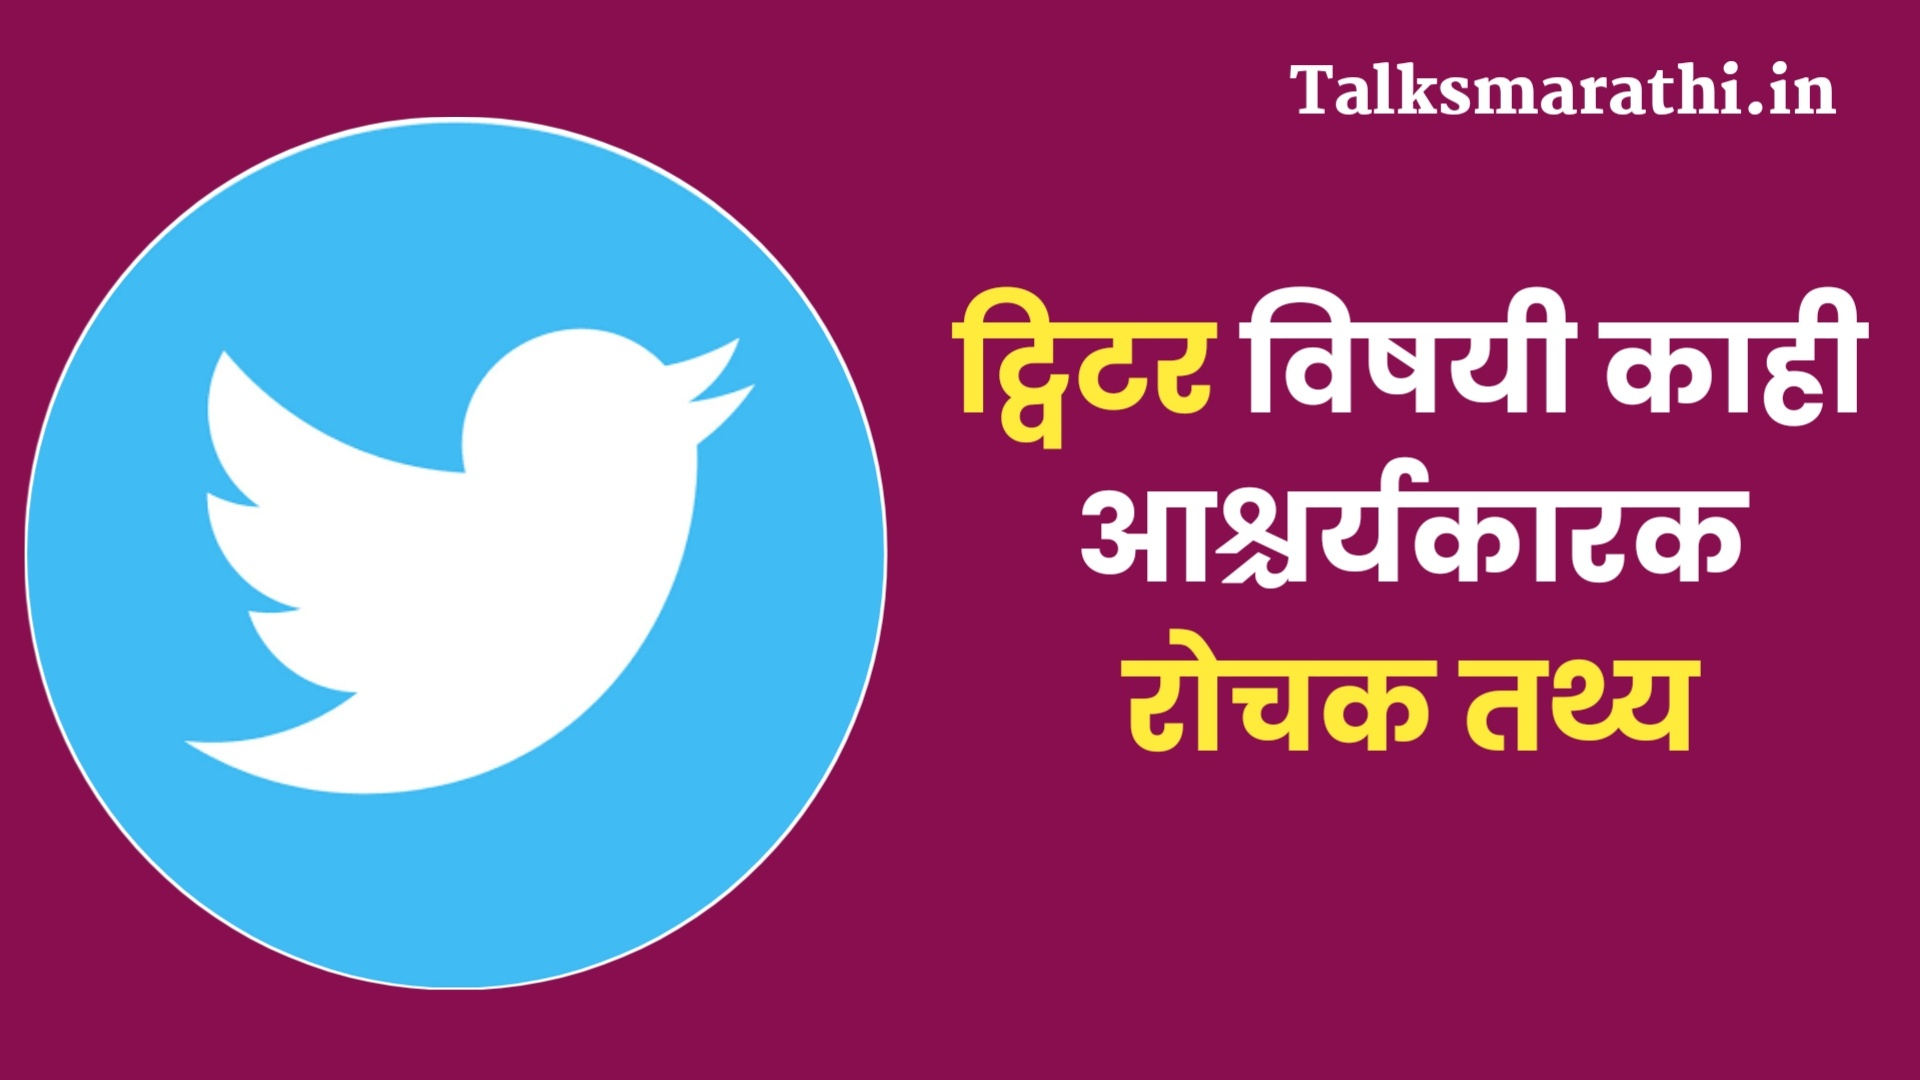 Intresting Facts about twitter in Marathi